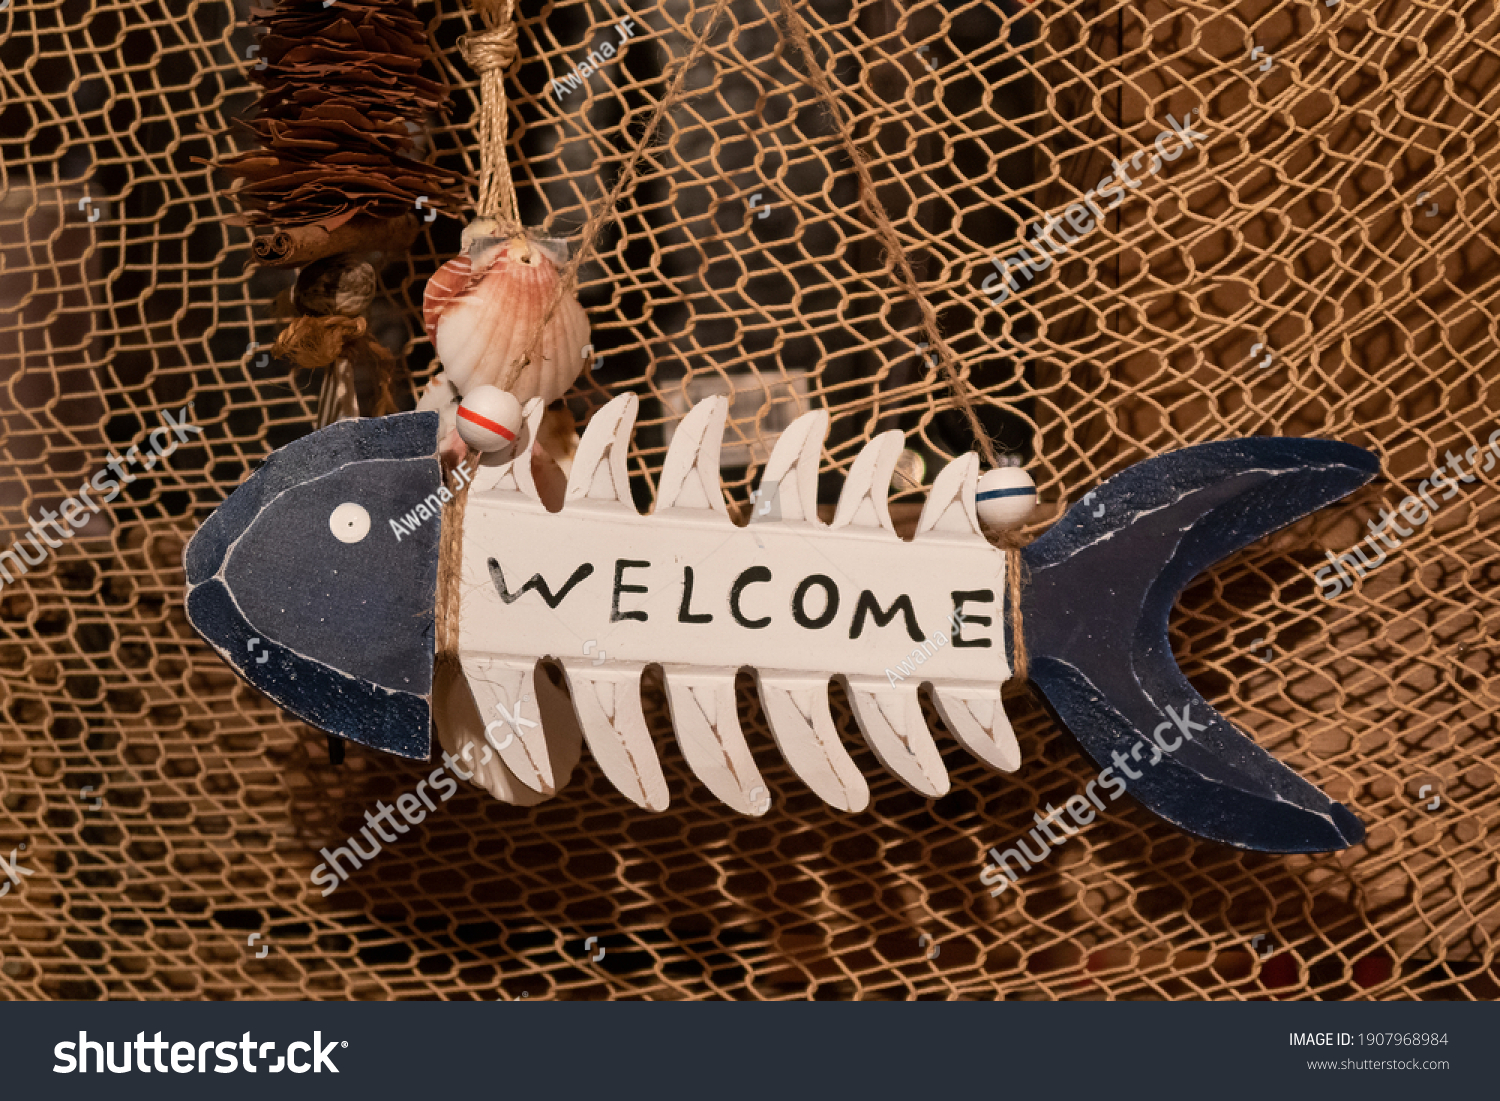 stock-photo-welcome-sign-on-a-wooden-dec